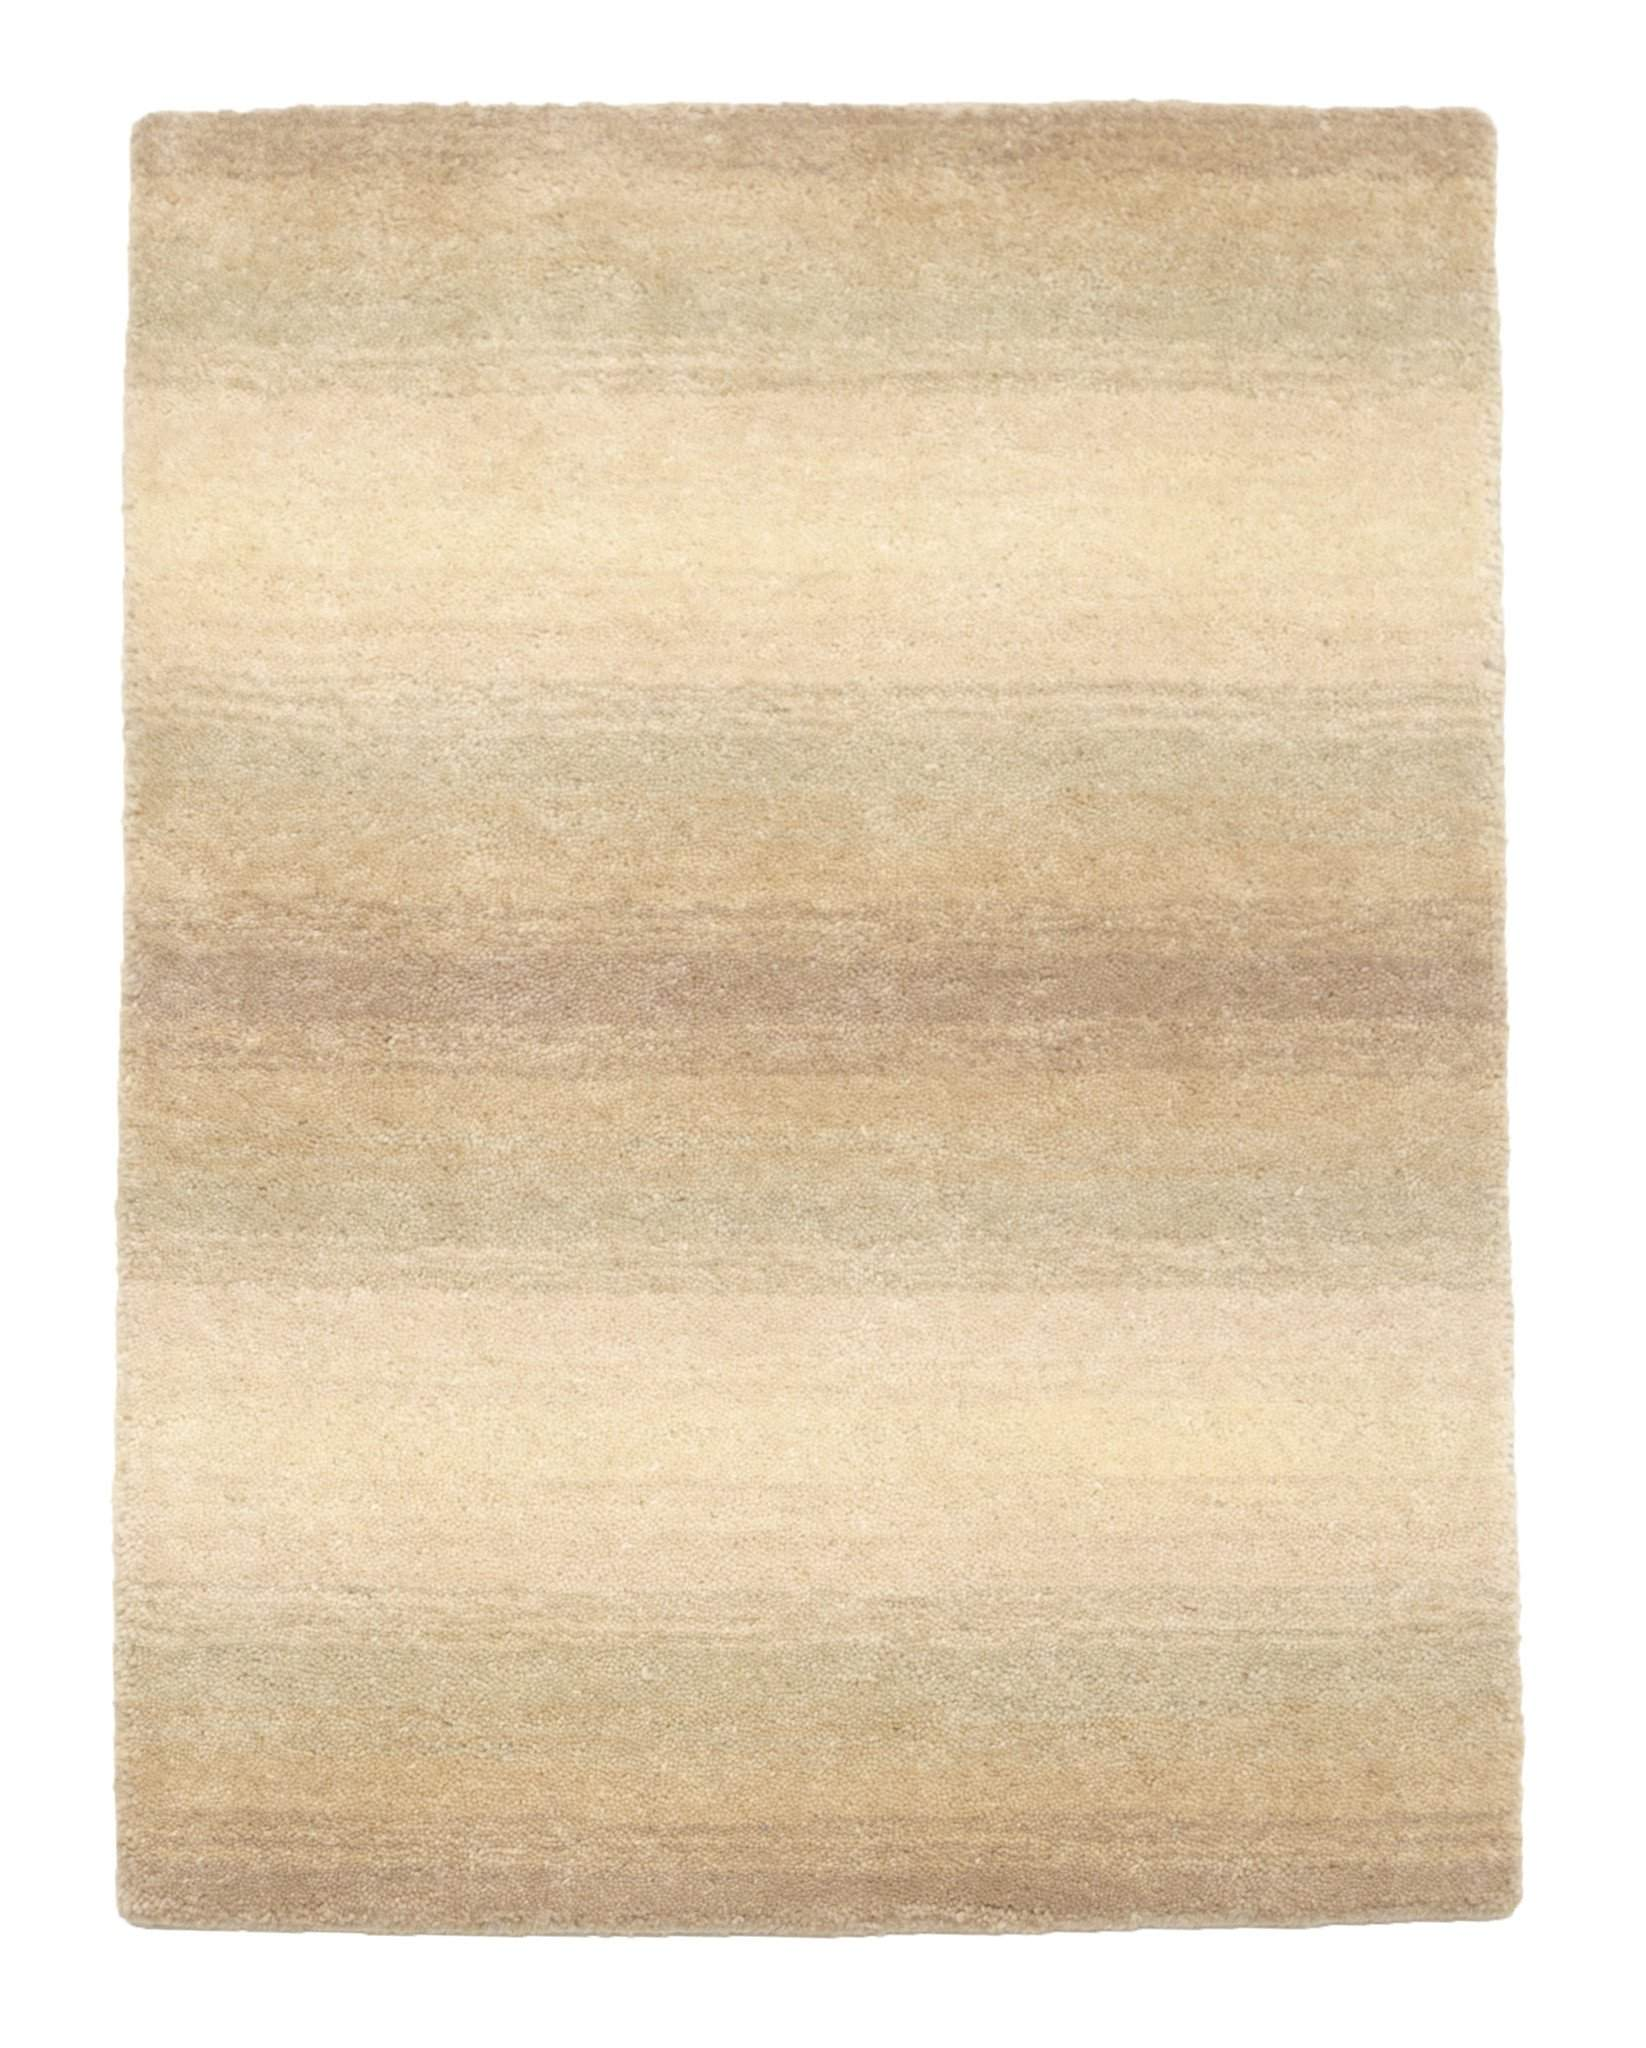 2' x 3' Sahara Desert Wool Rug-Area Rugs-Rug Shop and More